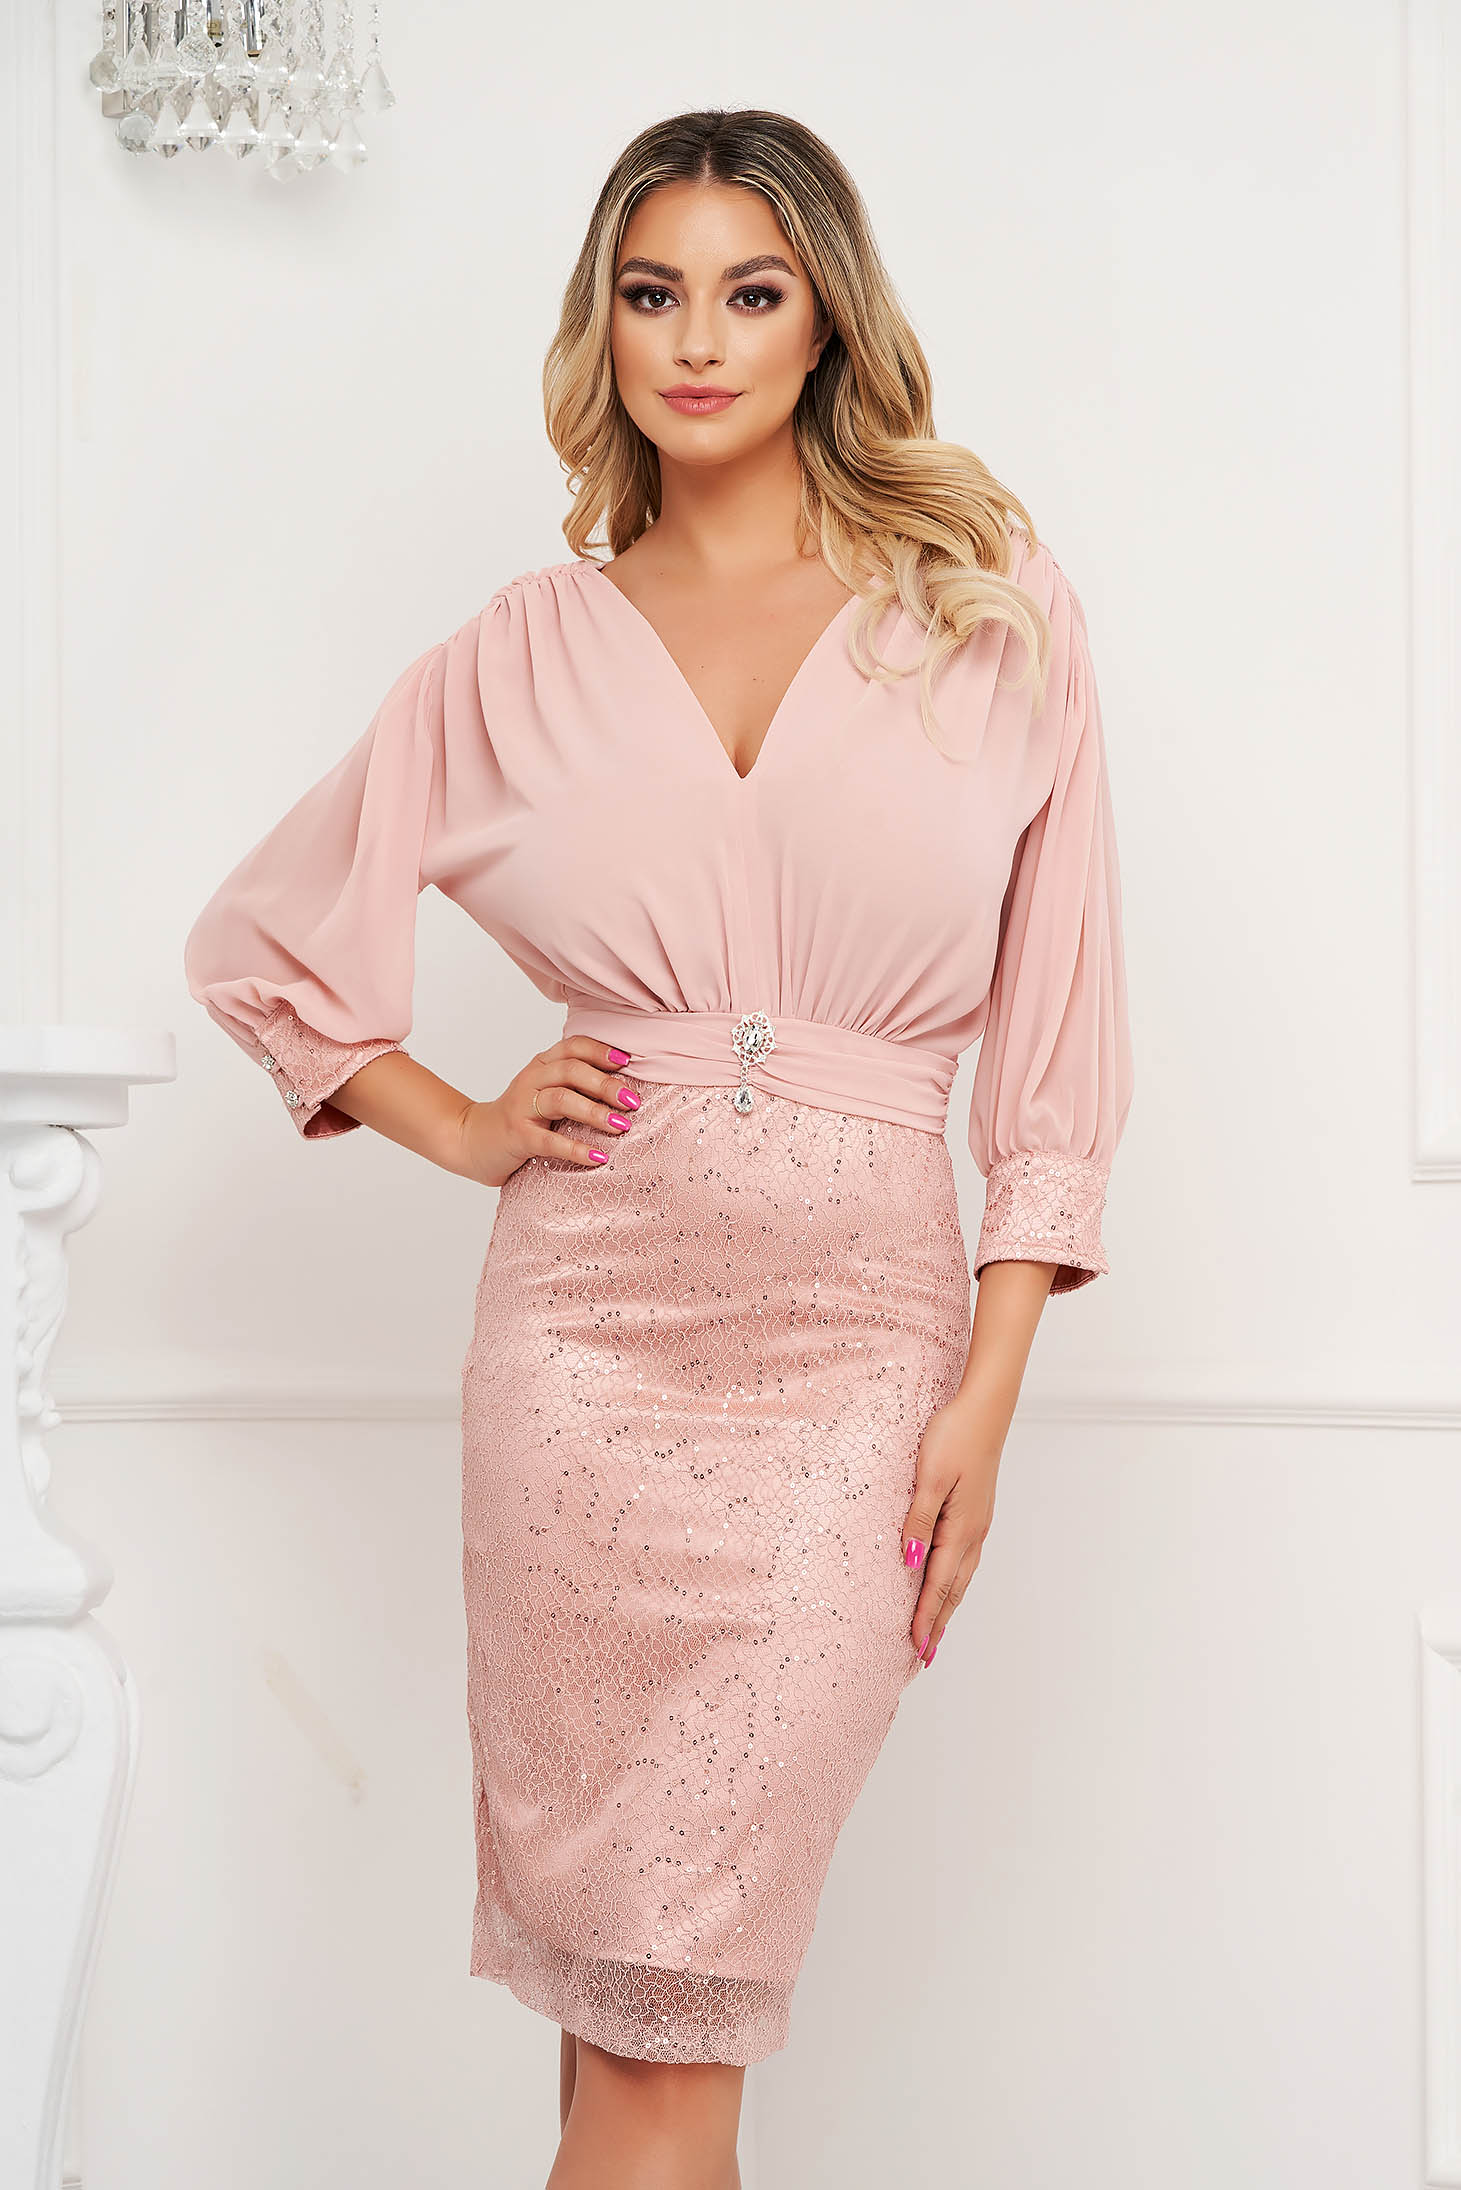 Lightpink pencil dress satin texture skirt with vail overlap accessorized with breastpin